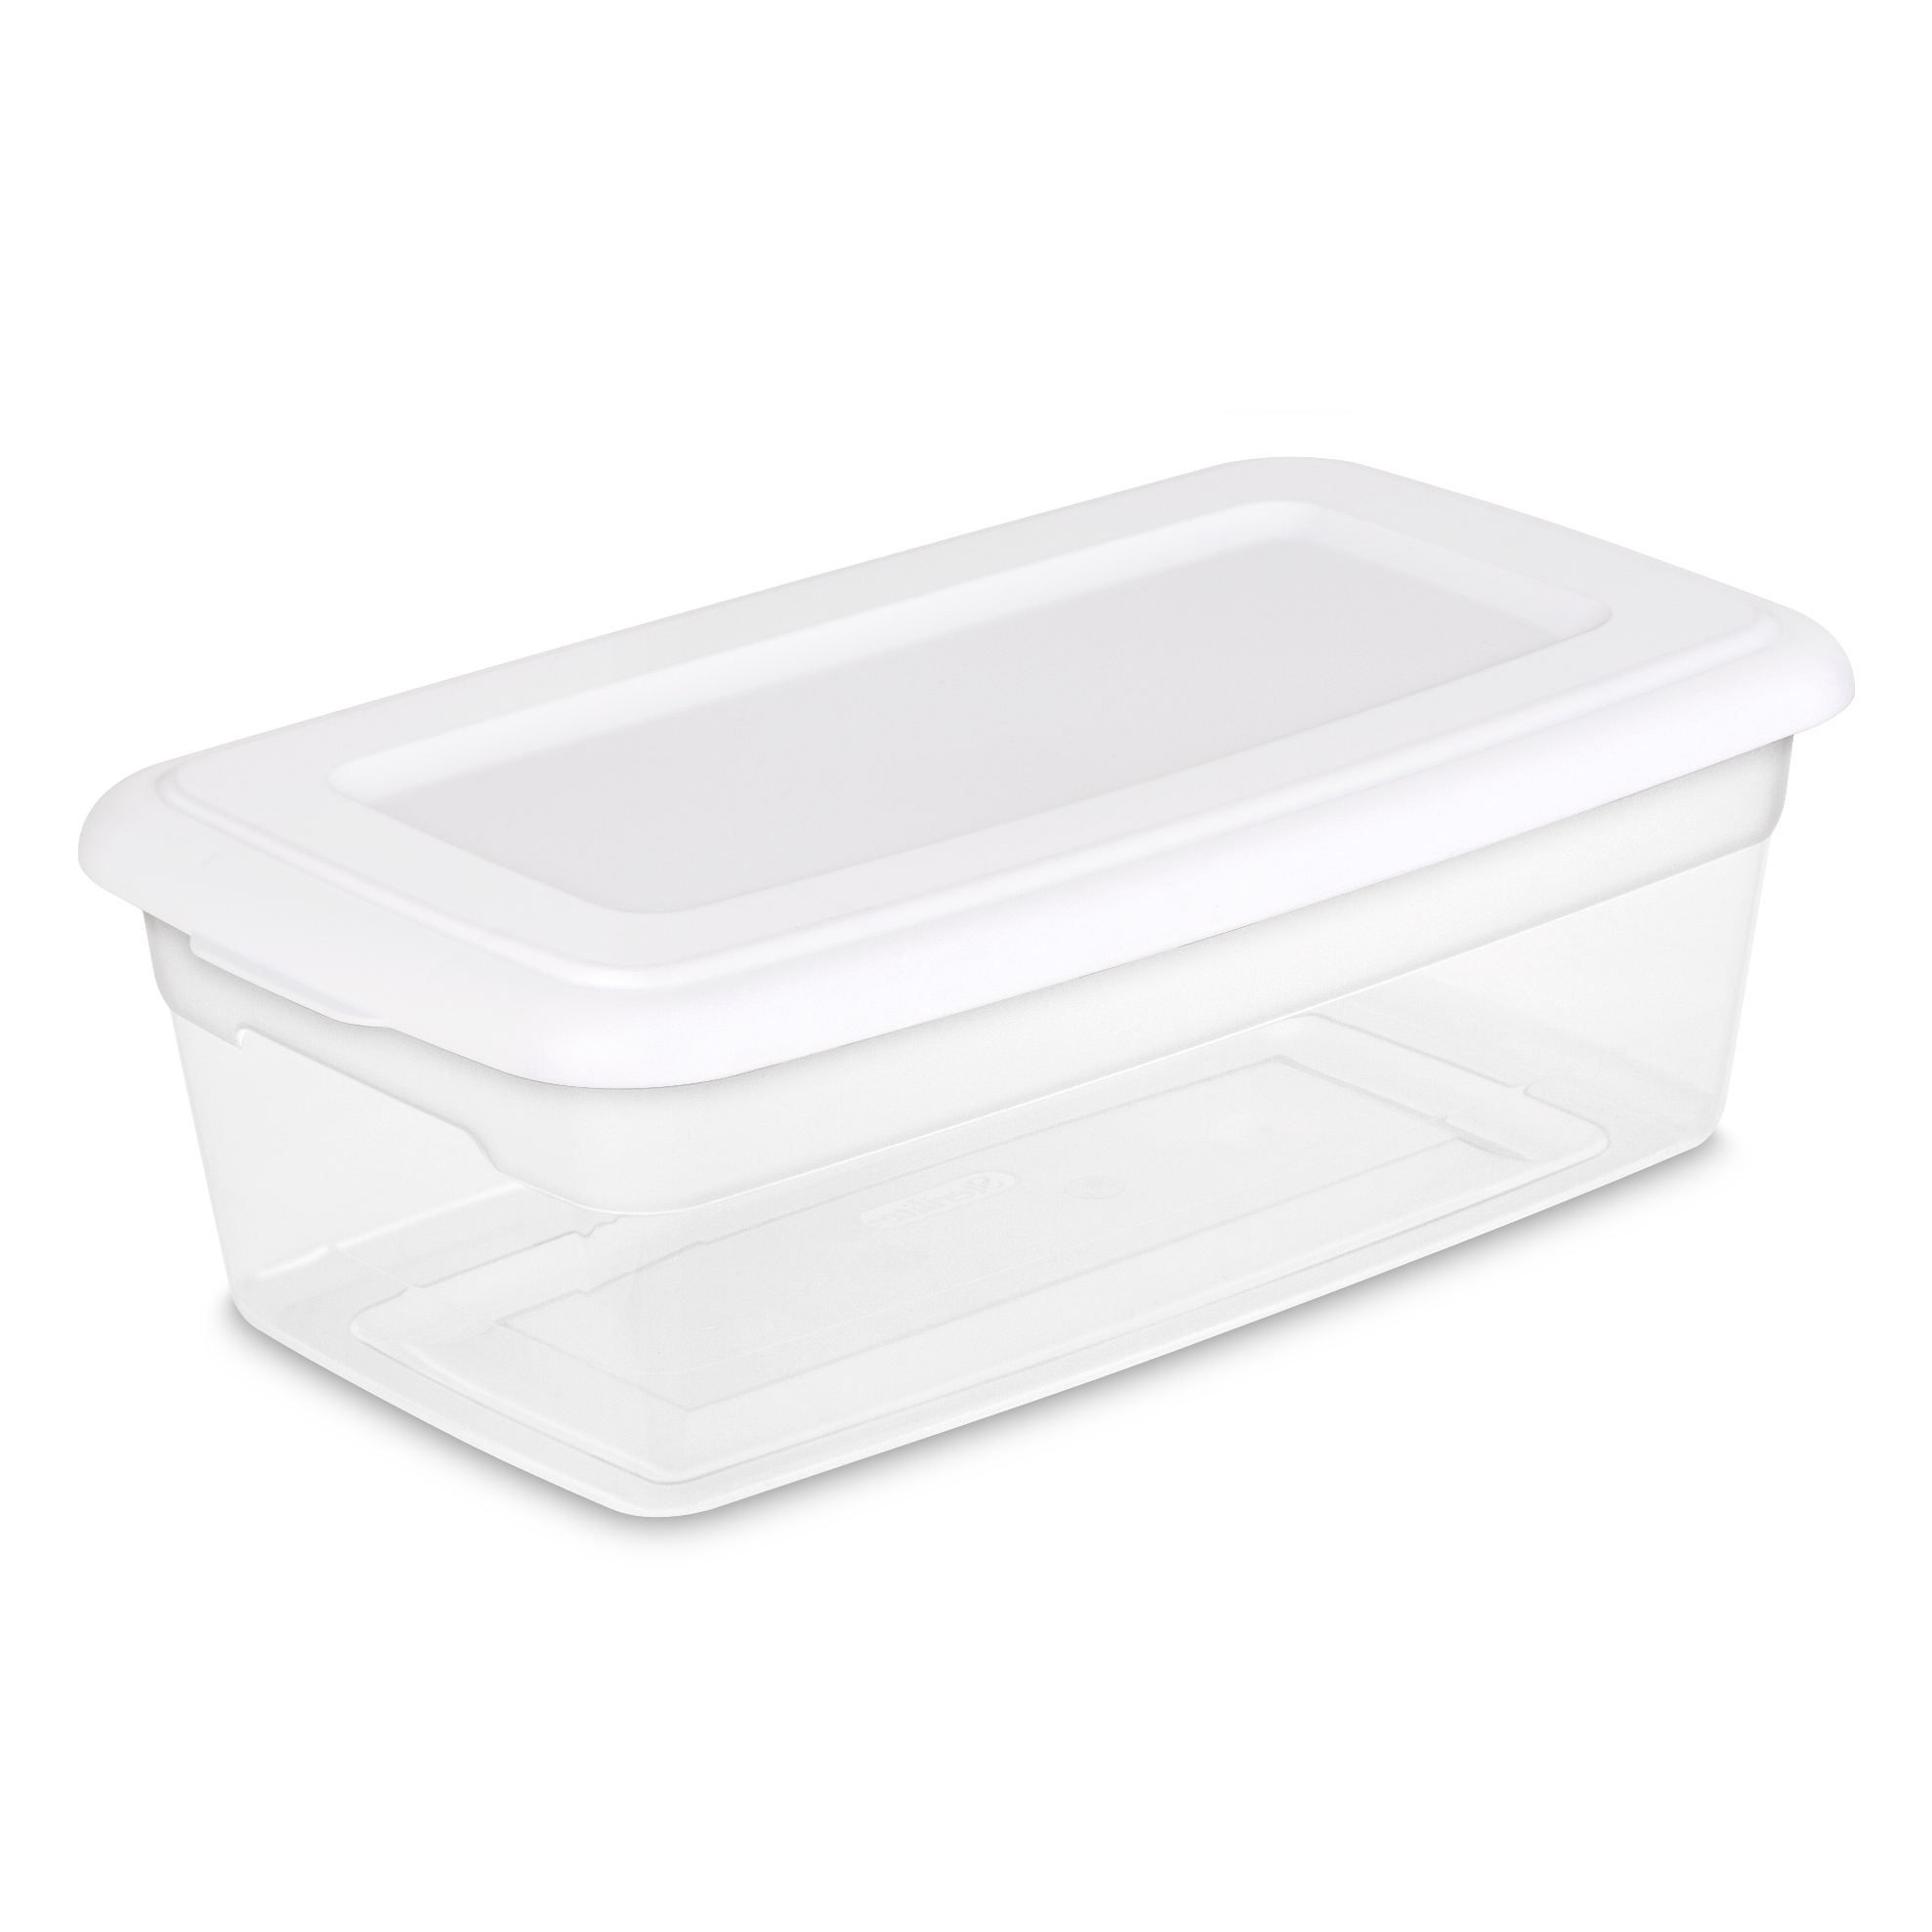 Sterilite 6 Qt./5.7 L Storage Box, White